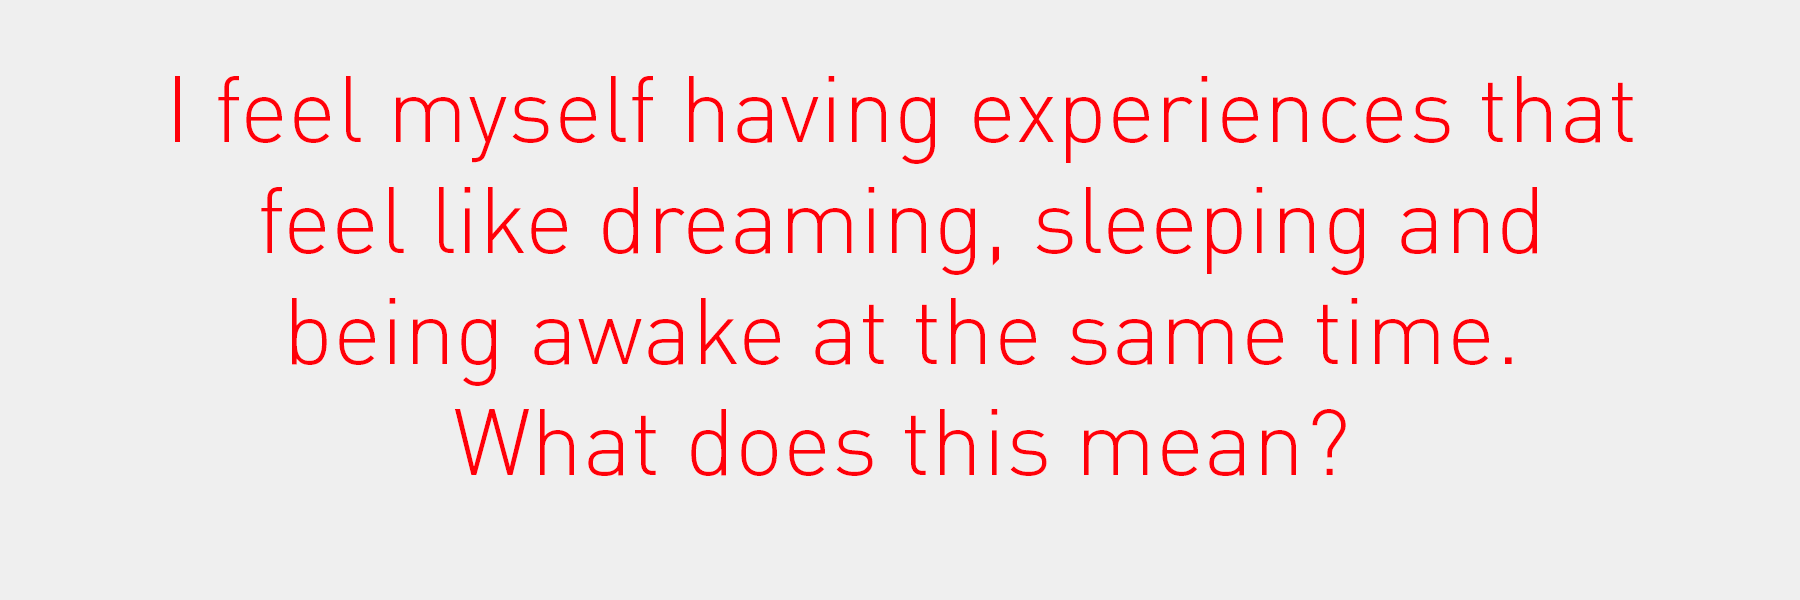 I feel myself having experiences that feel like dreaming, sleeping and being awake at the same time. What does this mean?